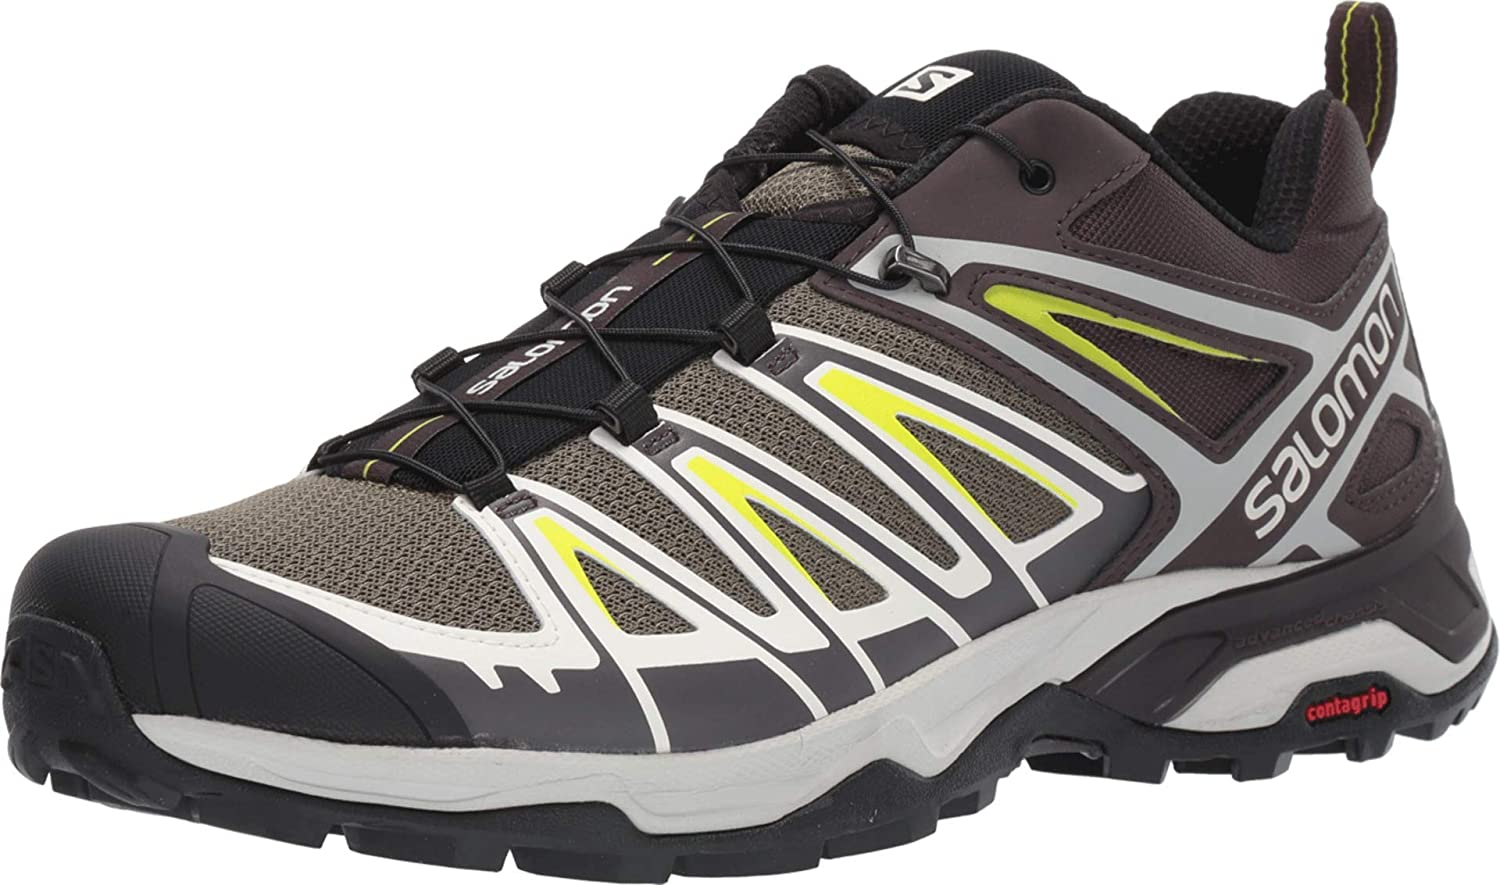 SALOMON Shoes X Ultra, Zapatillas de Hiking para Hombre: Amazon.es: Zapatos y complementos